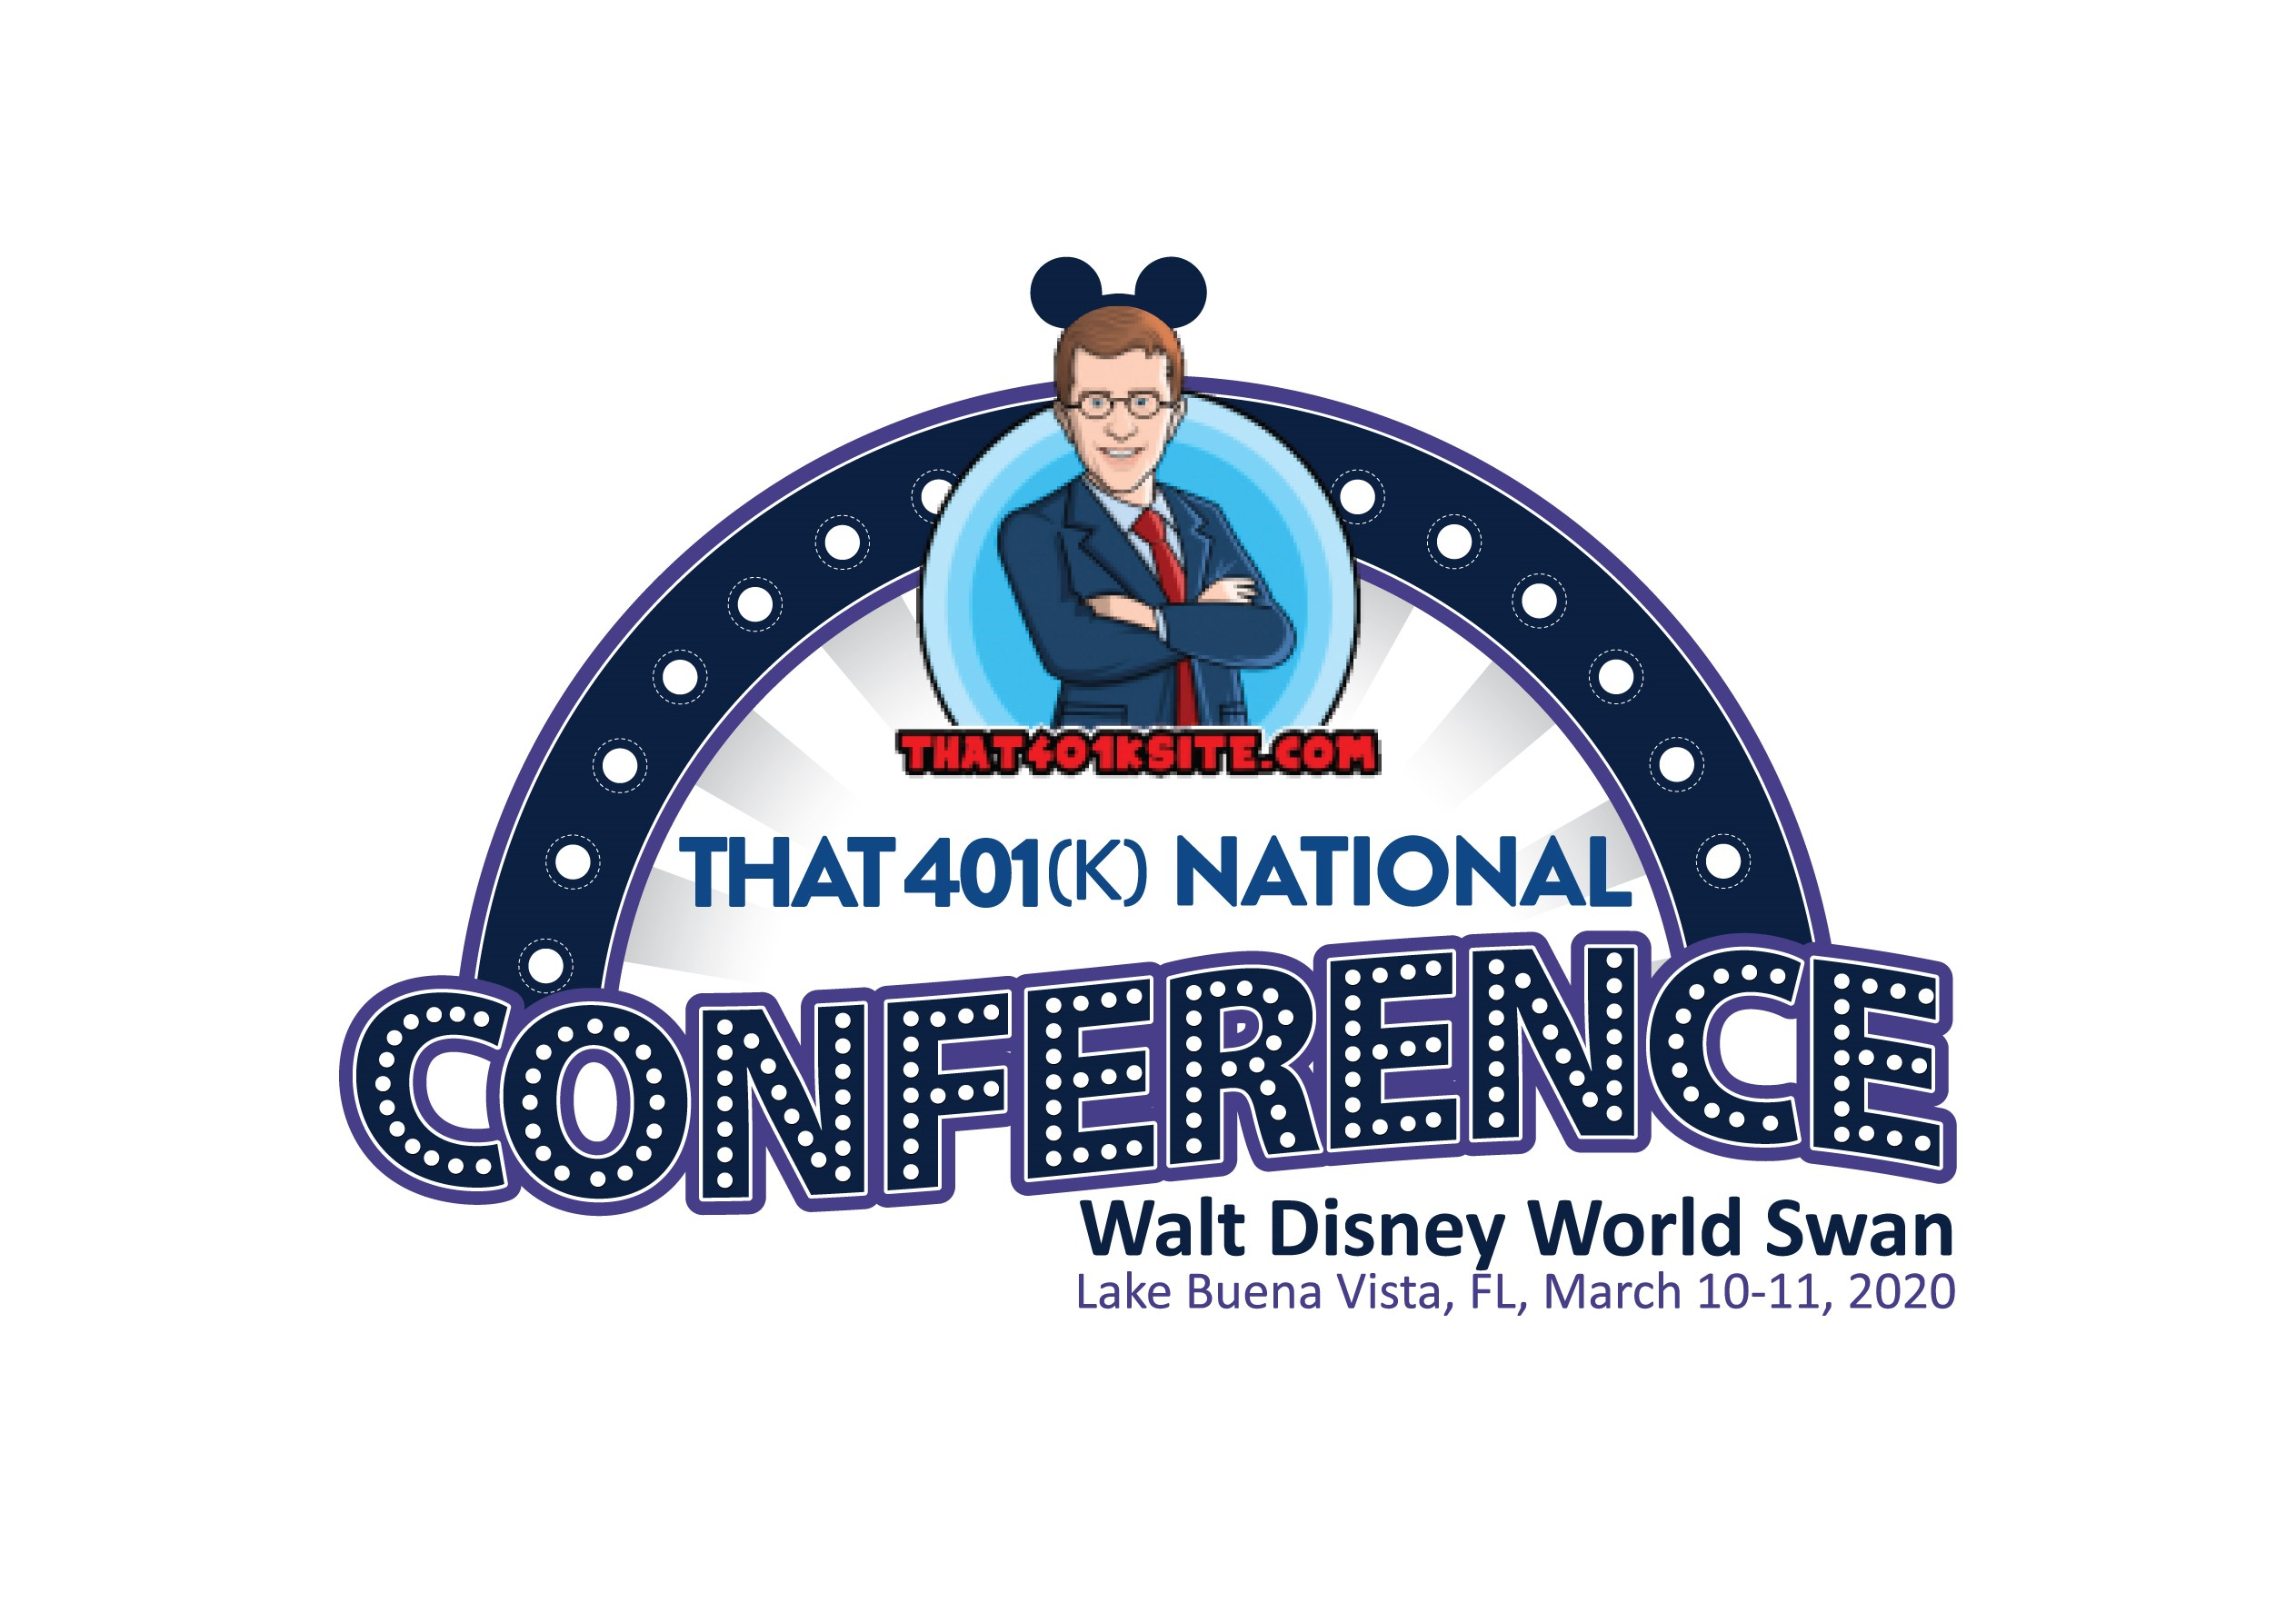 That 401(k) National Conference, Where Fun Meets 401(k